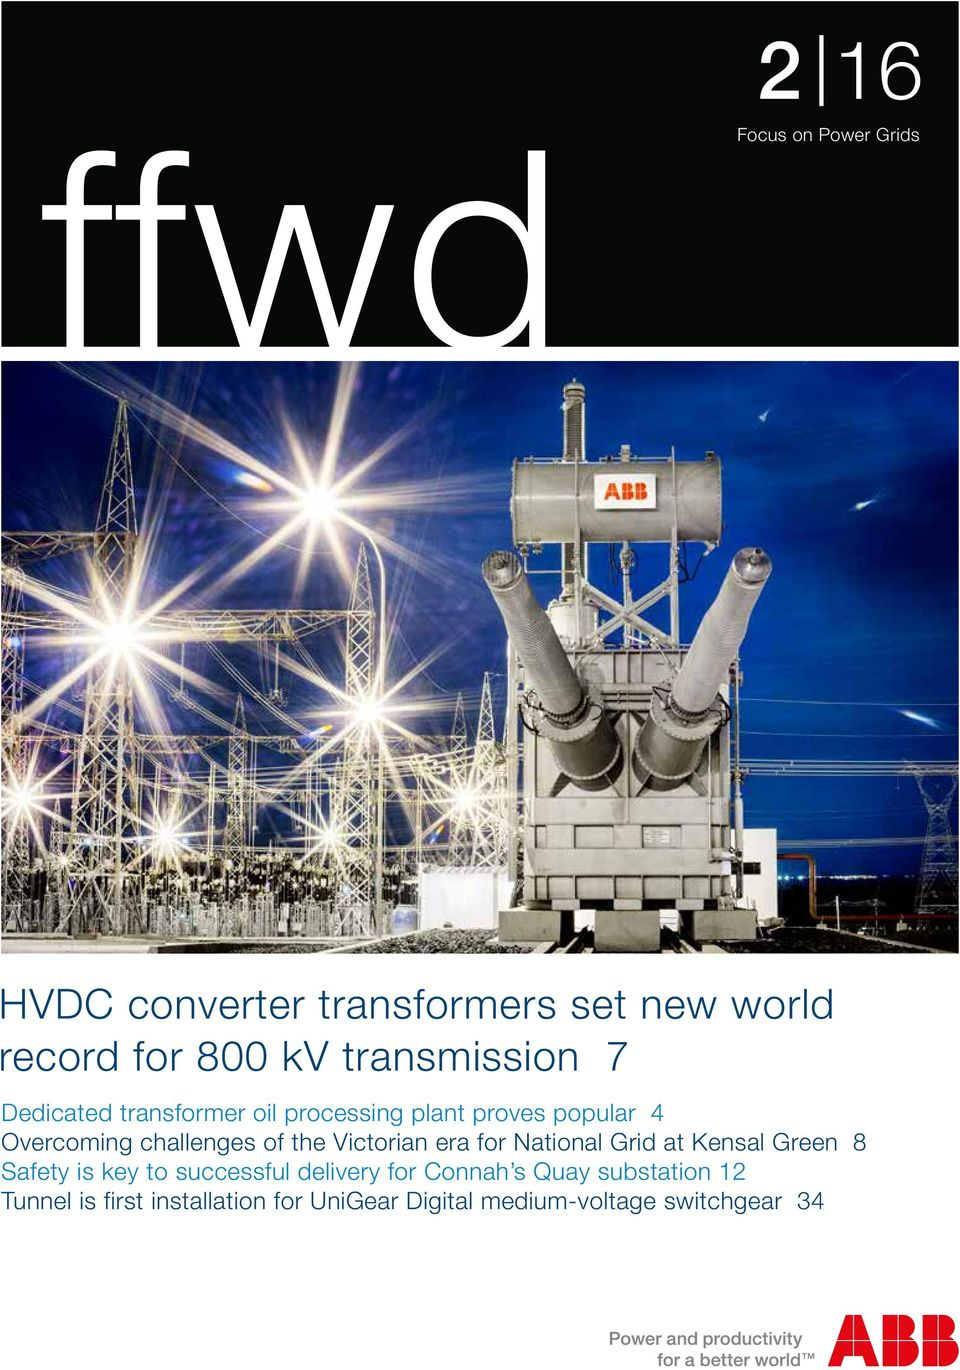 Hvdc Converter Transformers Set New World Record For 800 Kv Disconnecting Circuit Breaker Dcb With Fibre Optic Current Sensor Of The Victorian Era National Grid At Kensal Green 8 Safety Is Key To Successful